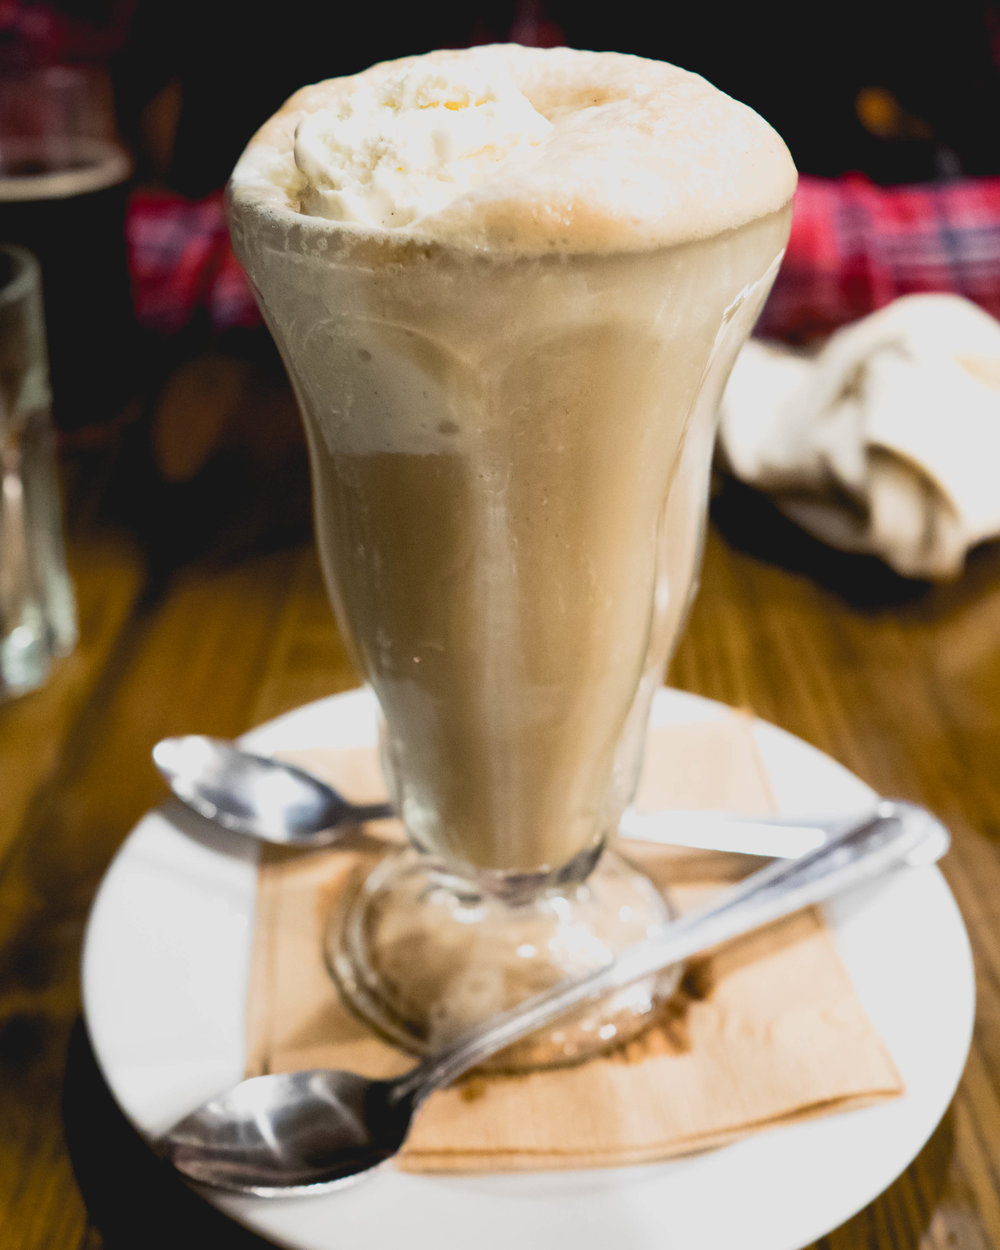 root beer float : snoqualmie root beer on tap, snoqualmie danish vanilla ice cream.